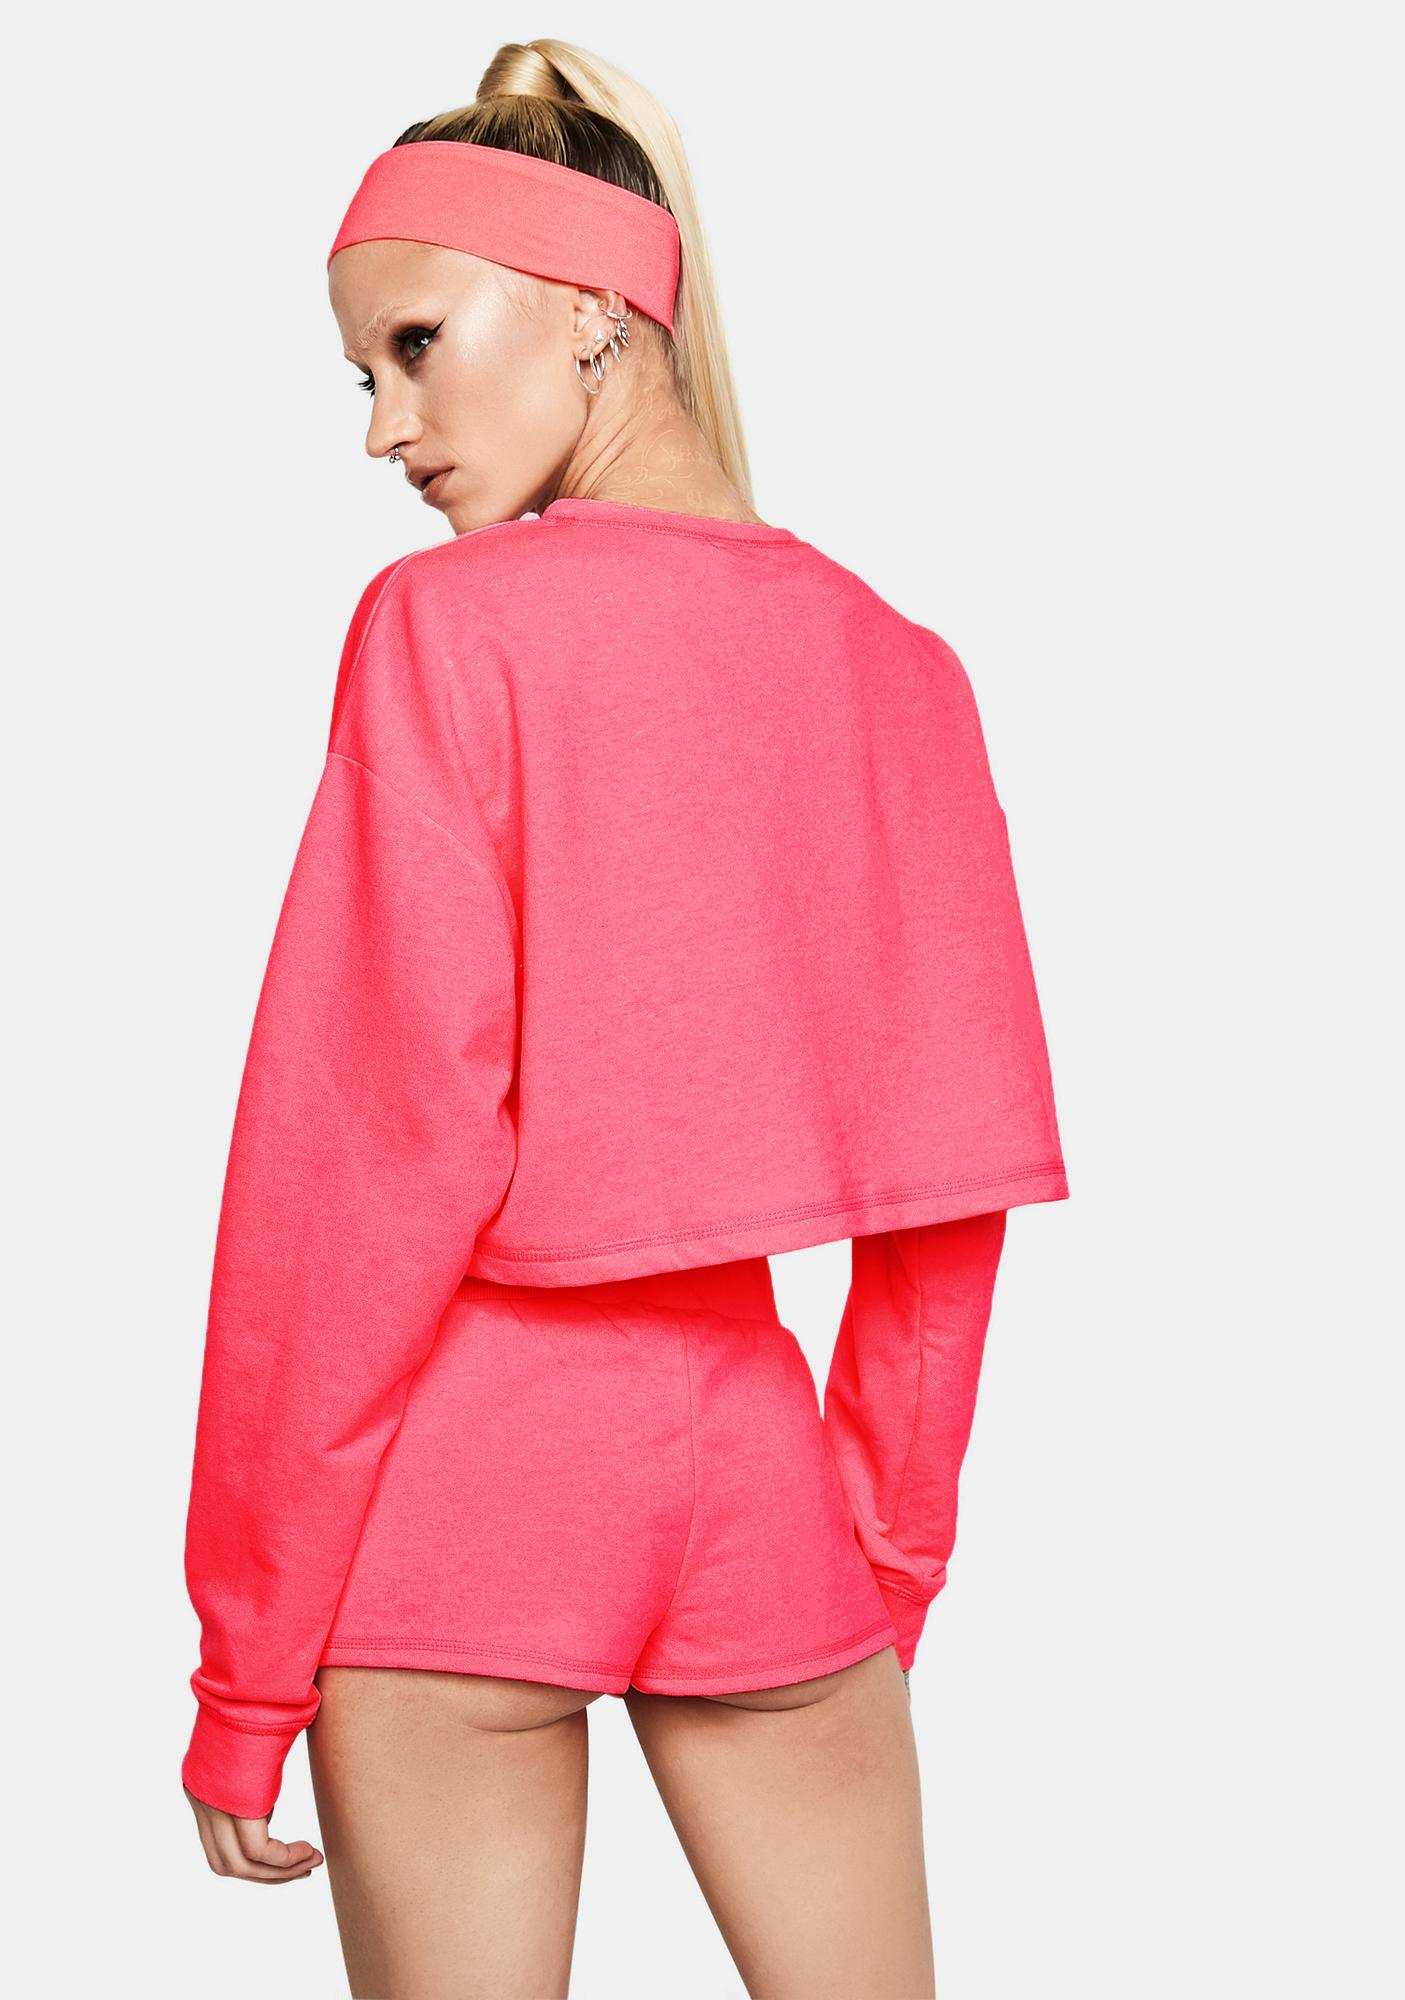 Club Exx Fuchsia Feel The Rush Cropped Long Sleeve